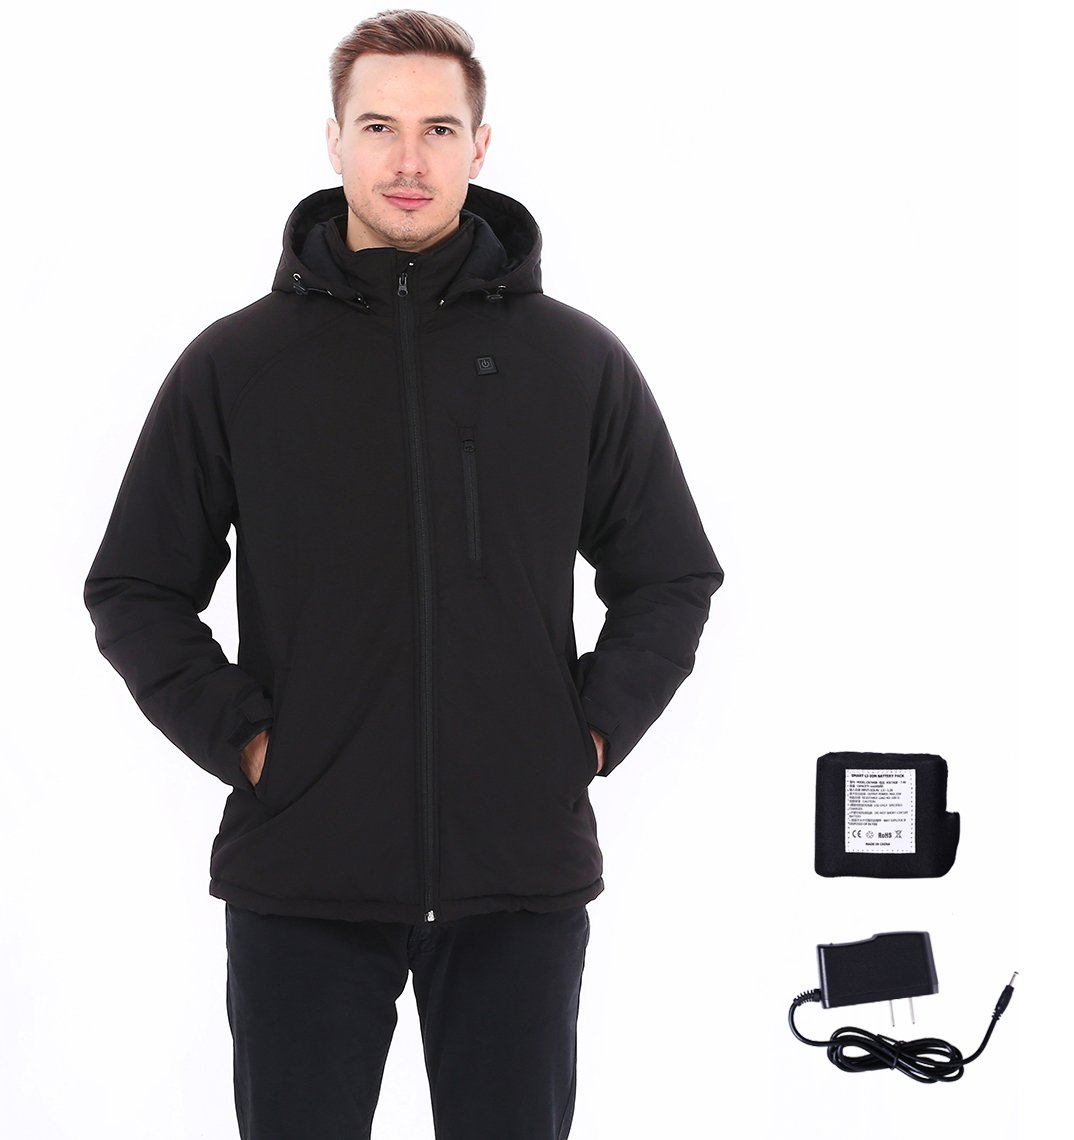 Lacle Men's Wireless Heated Jacket Kit With Battery Pack and Detachable Hood (Black,Small)